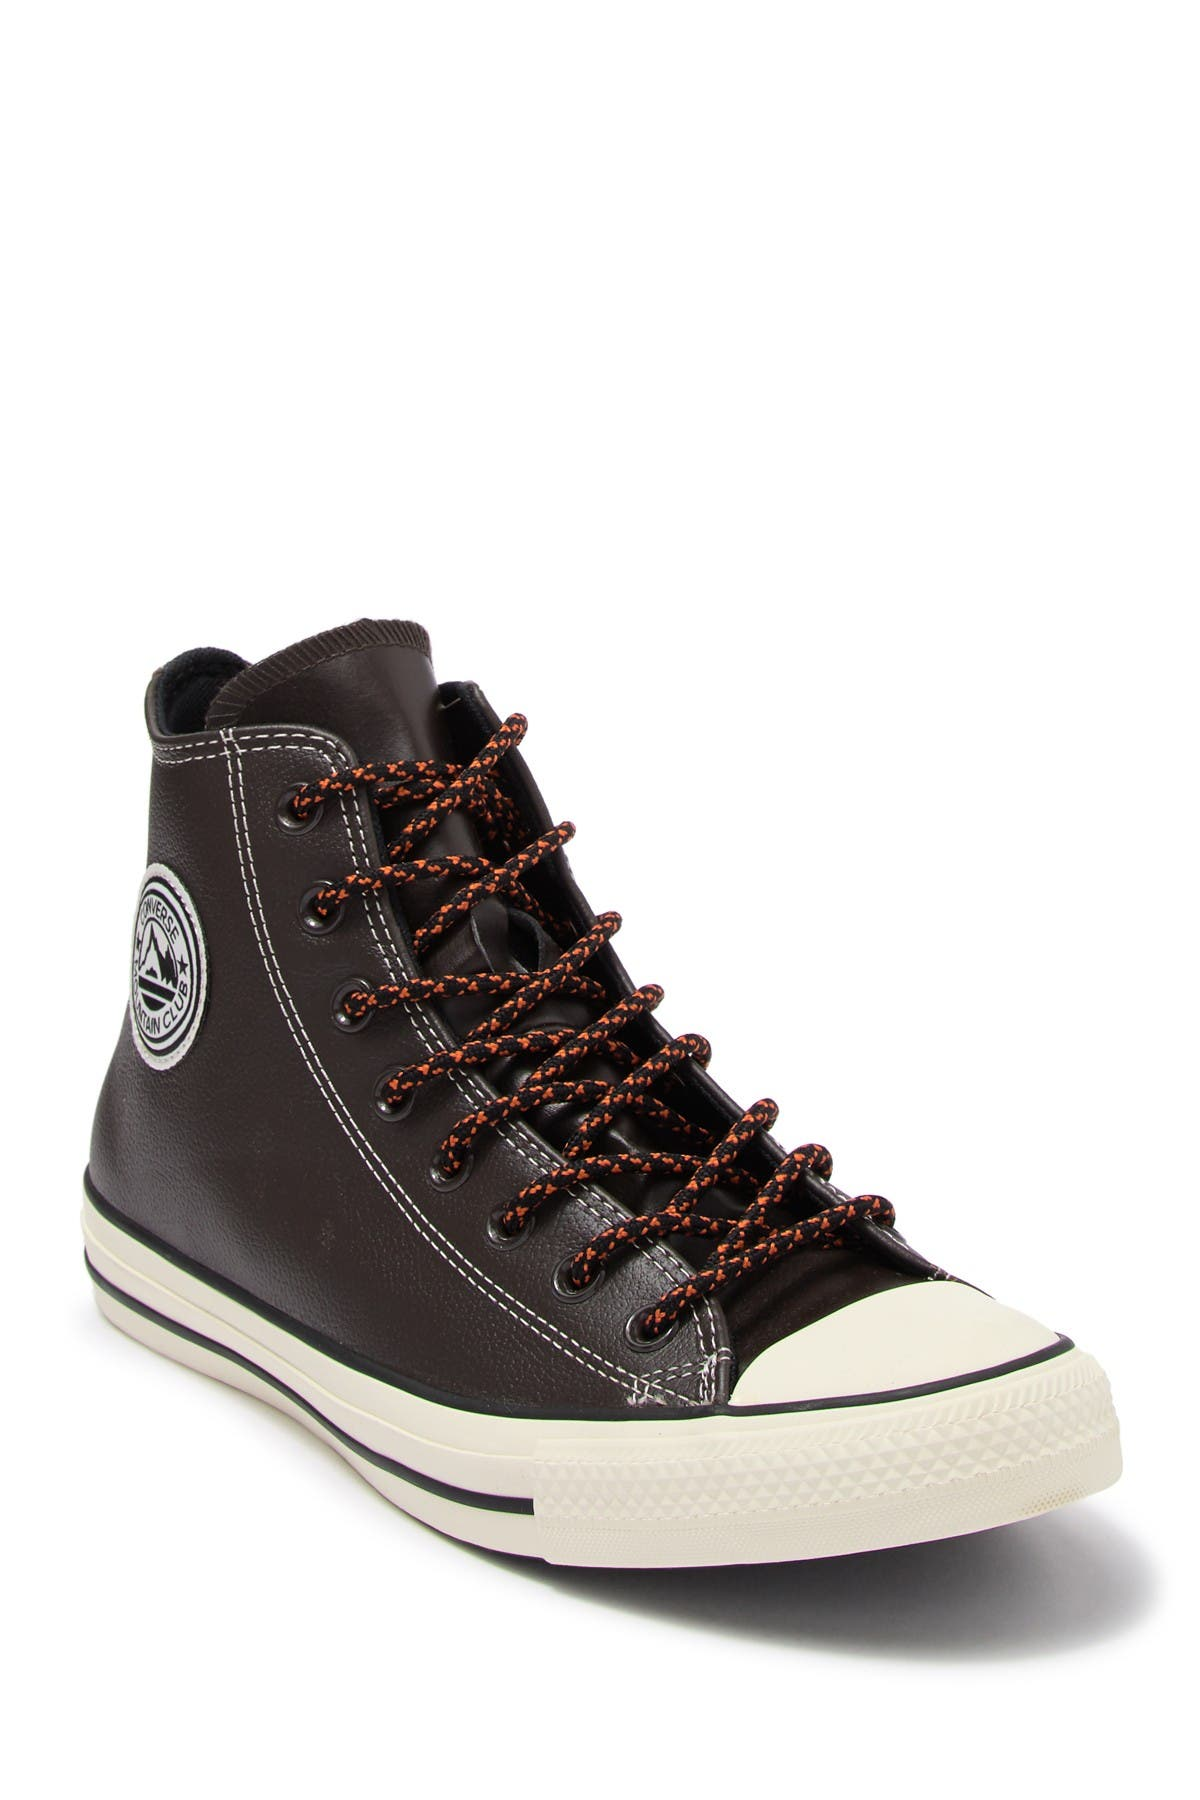 Image of Converse Chuck Taylor All Star ArcHival High Top Leather Sneaker